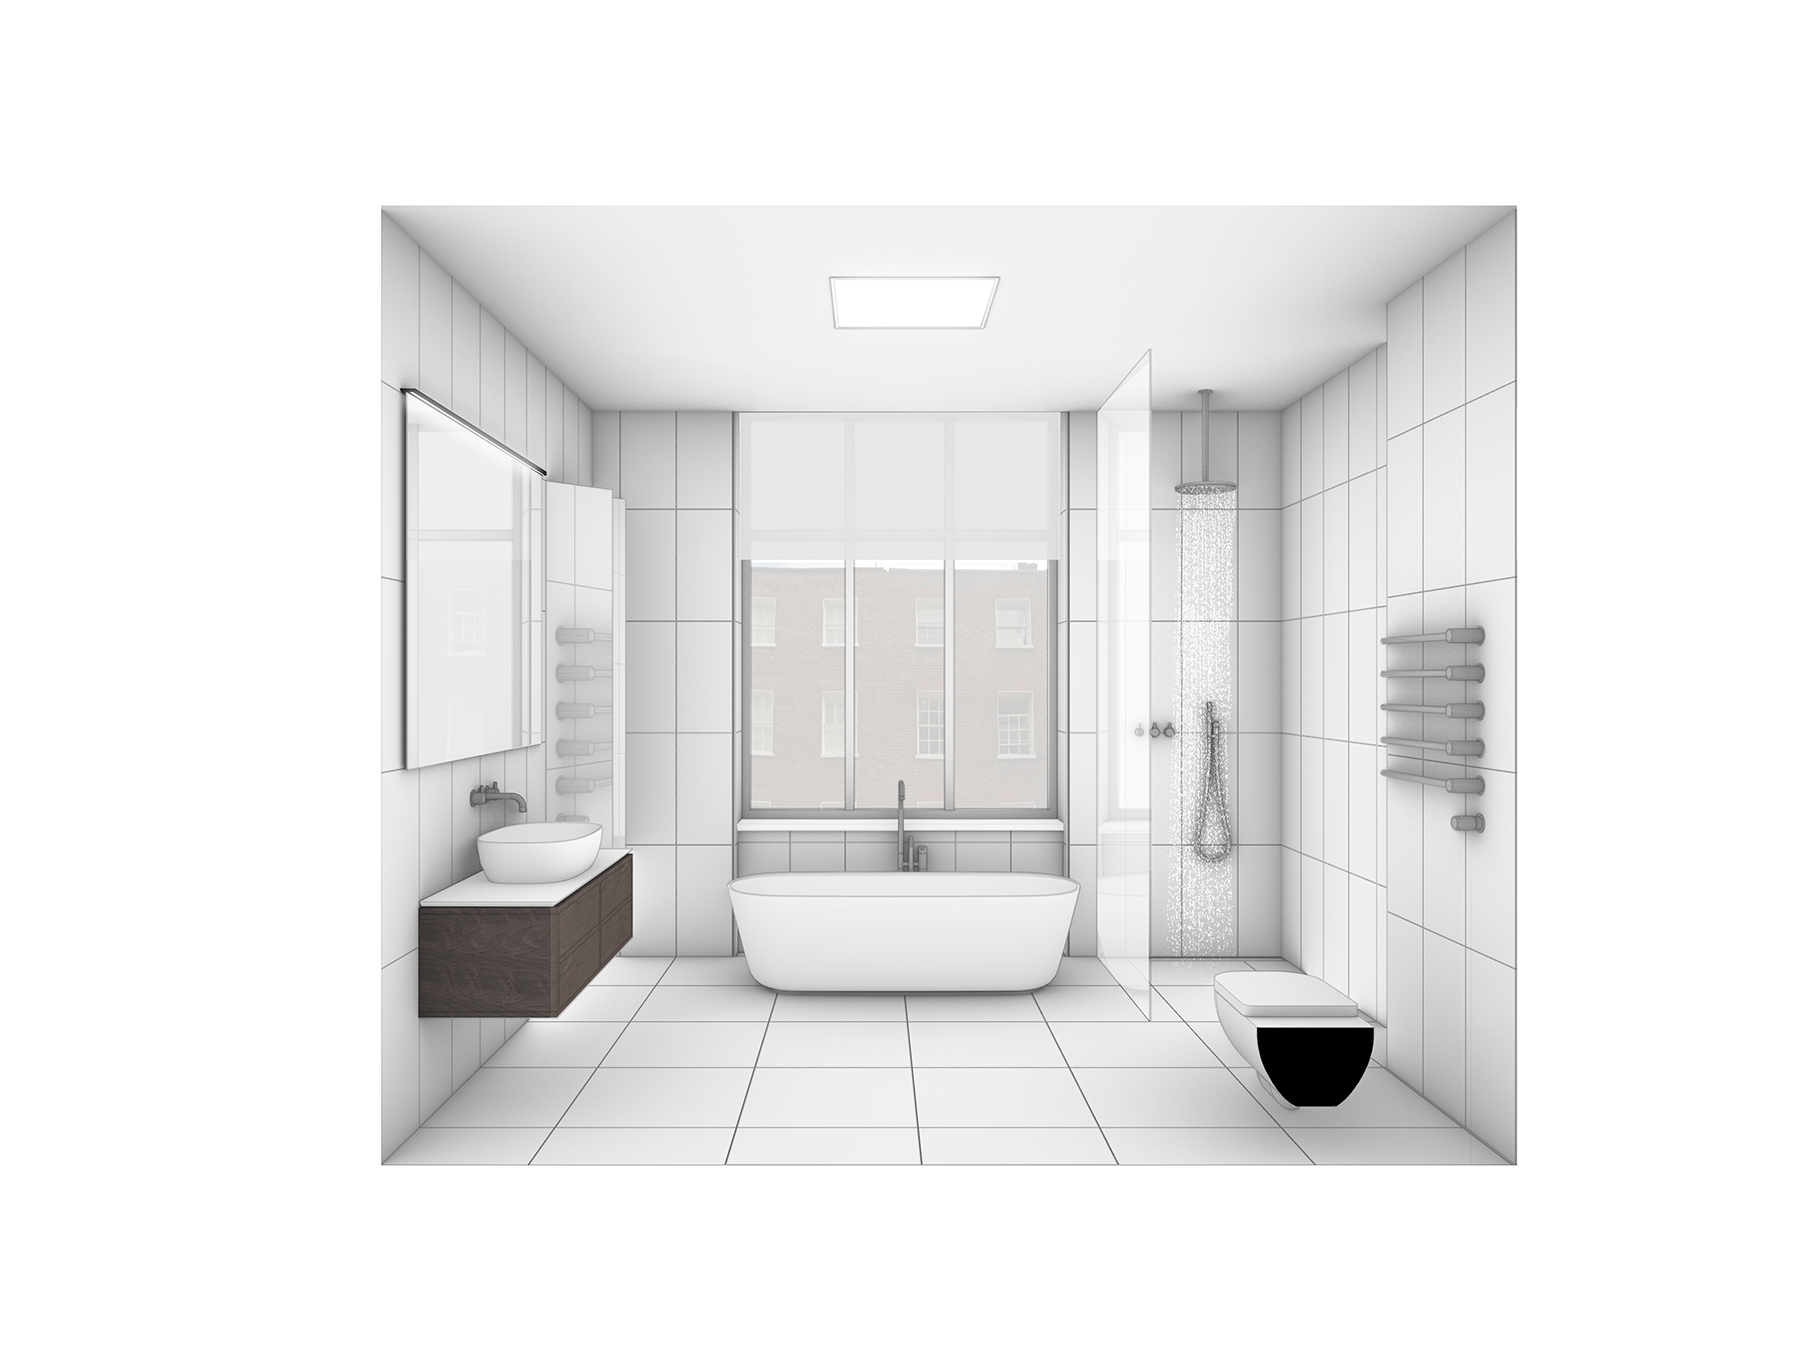 180529-Ensuite-Perspective-No-Joinery.jpg